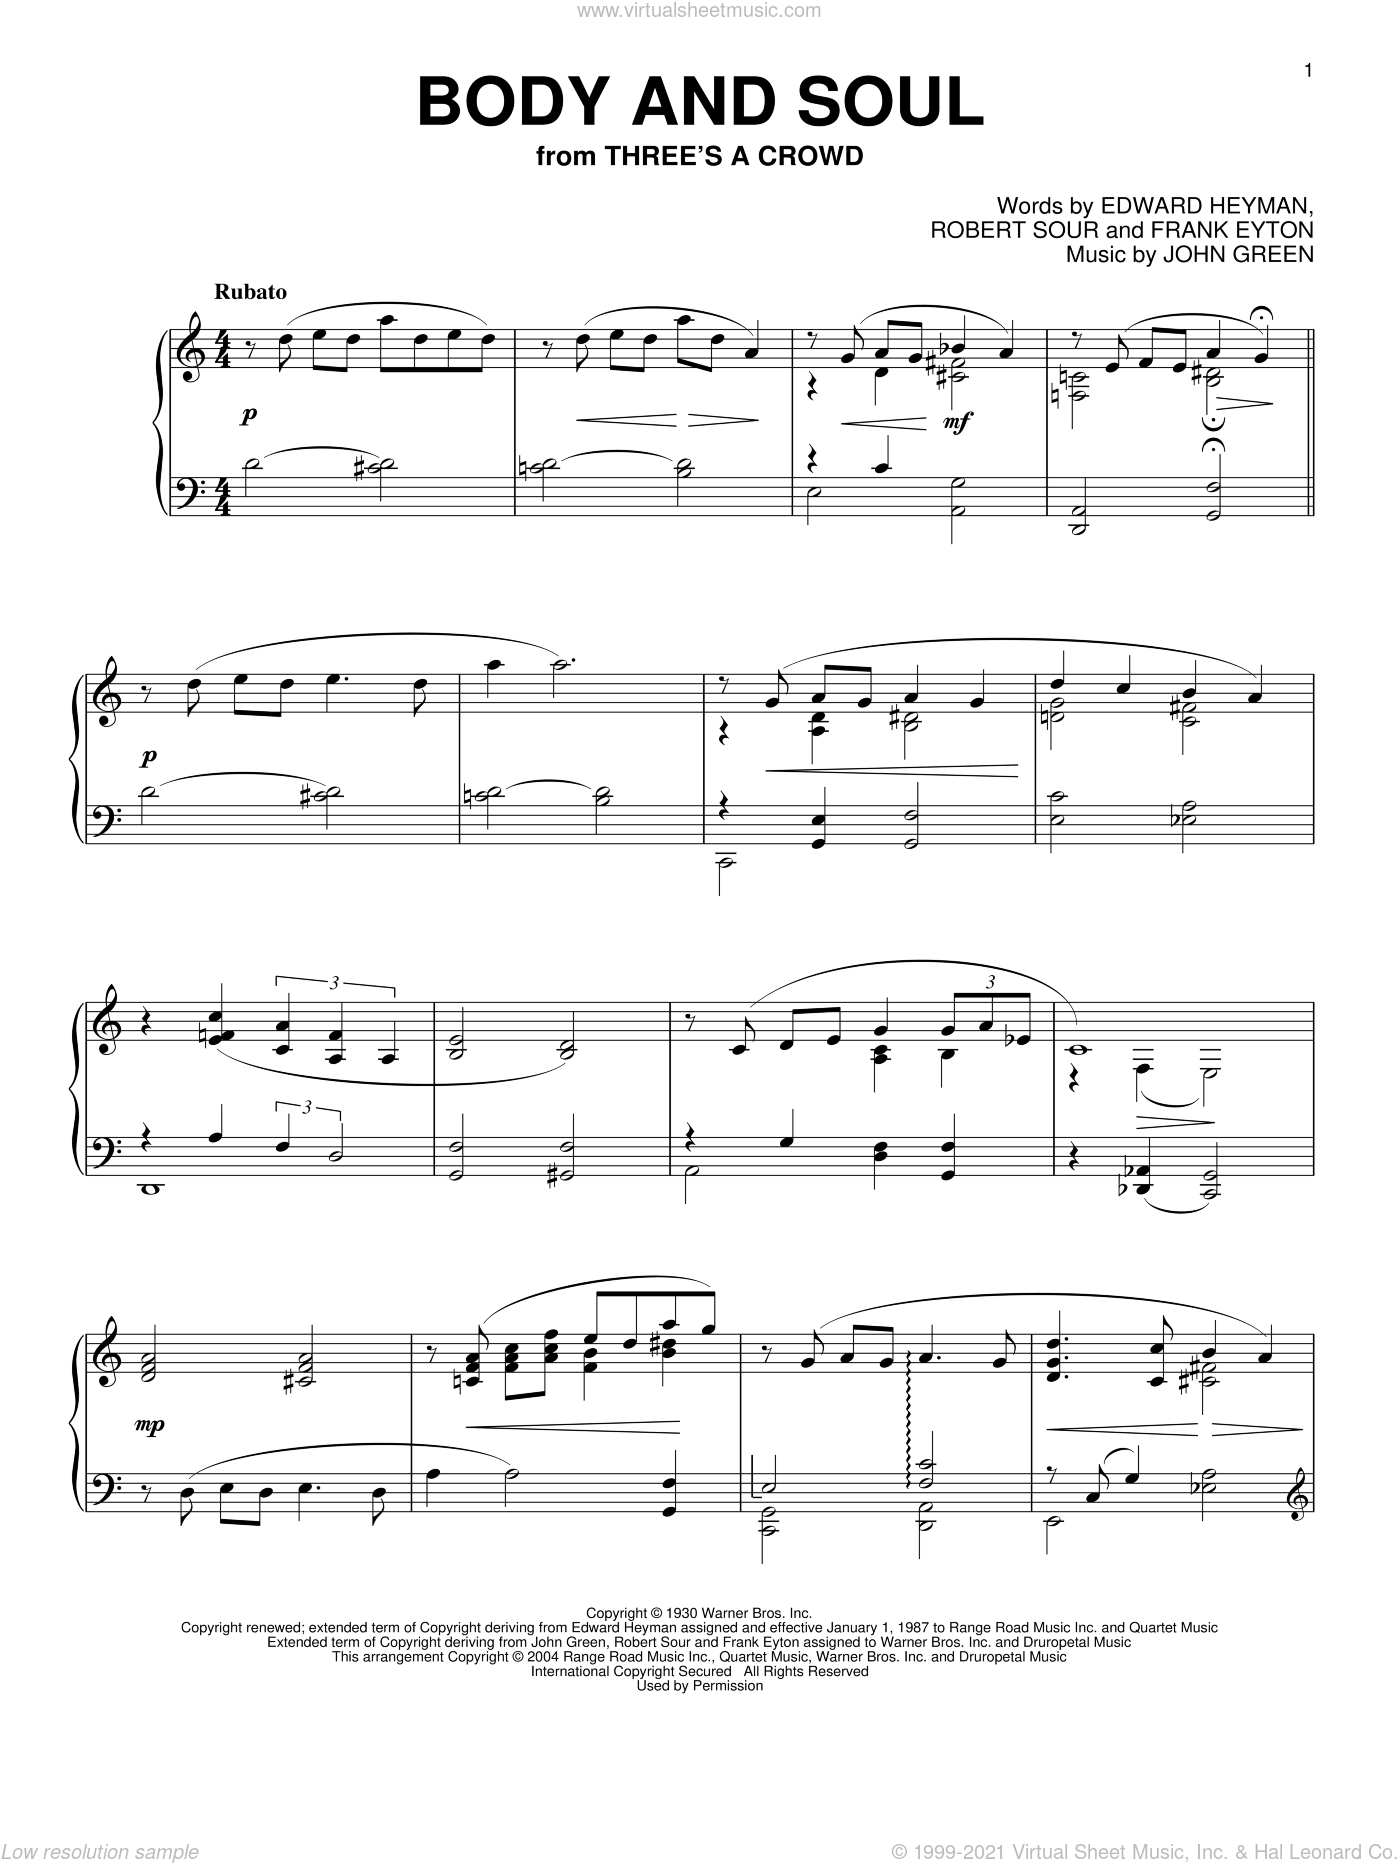 Body And Soul sheet music for piano solo by Robert Sour, Phillip Keveren, Edward Heyman, Frank Eyton and Johnny Green. Score Image Preview.